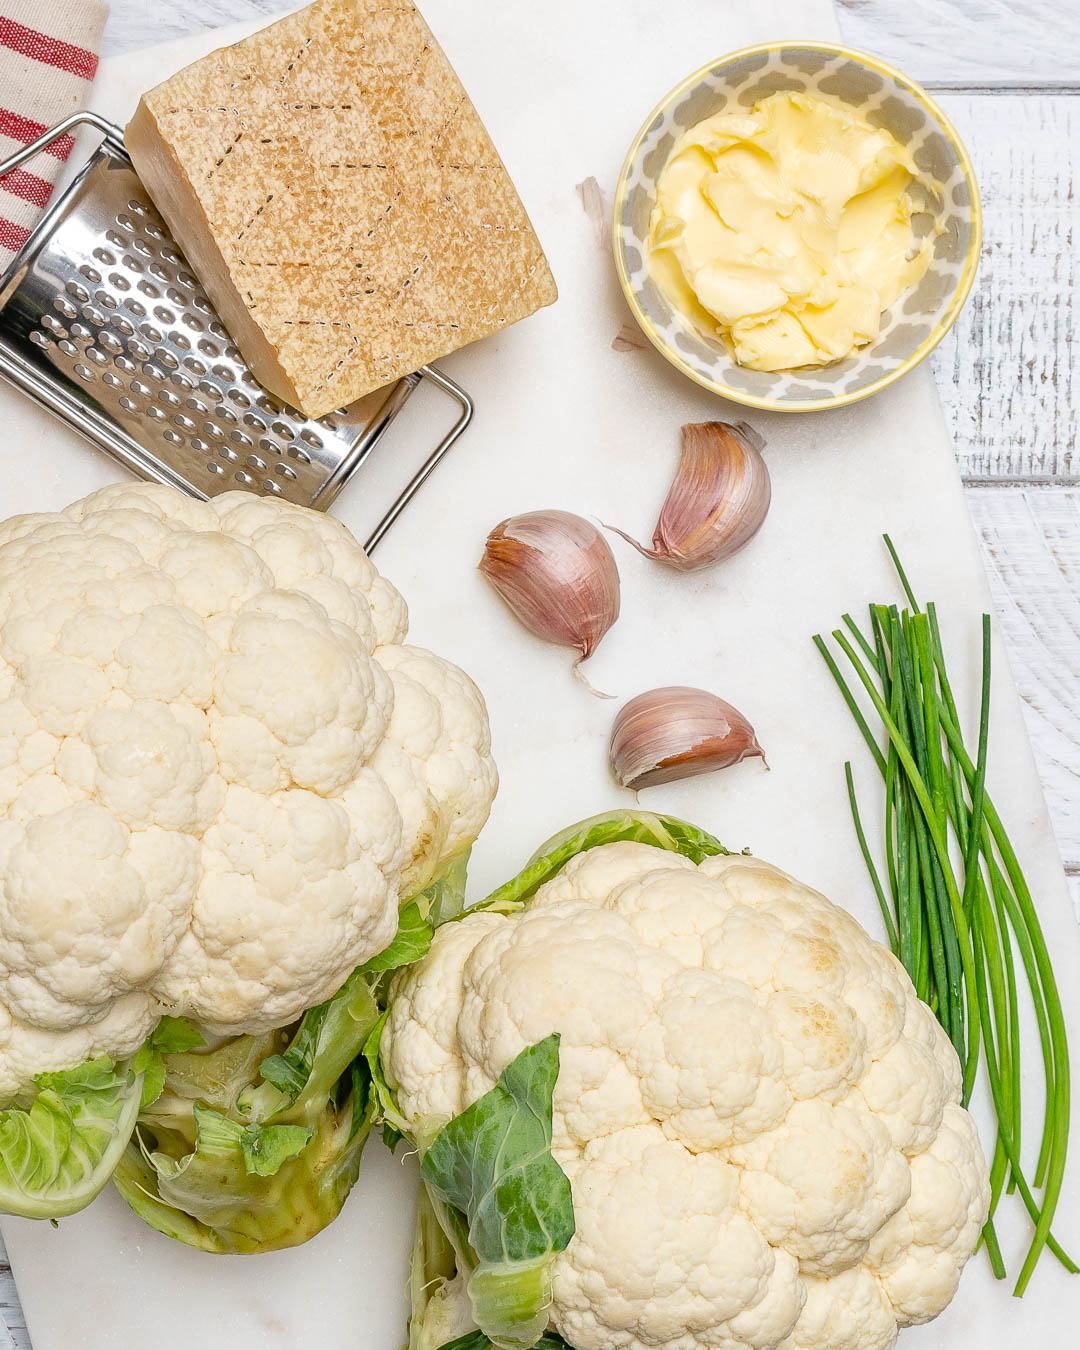 Clean Garlicy-Parm Mashed Recipe